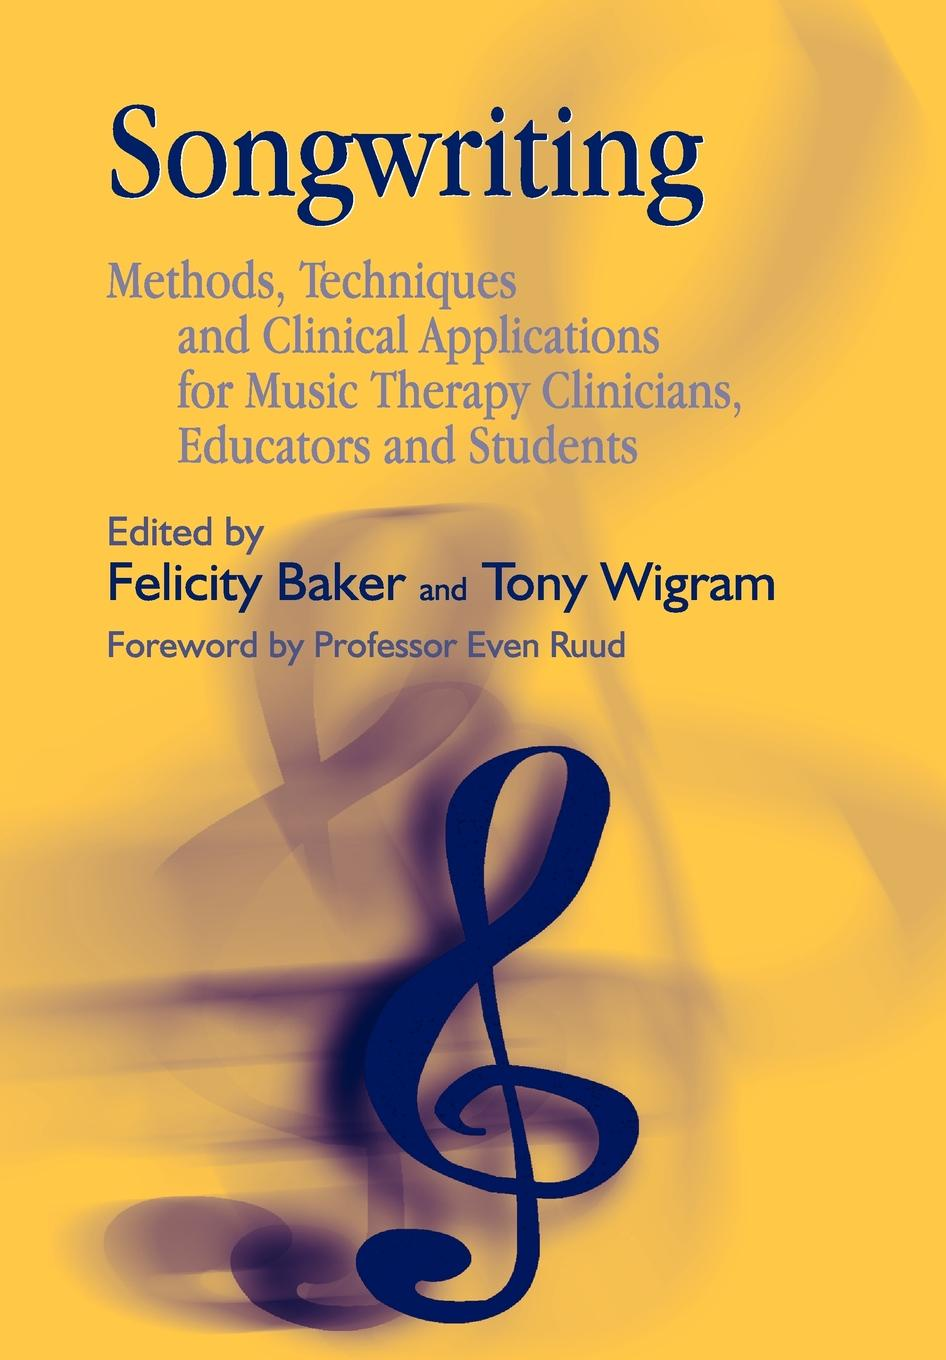 Songwriting. Methods, Techniques and Clinical Applications for Music Therapy Clinicians, Educators and Students caroli sergio analytical techniques for clinical chemistry methods and applications